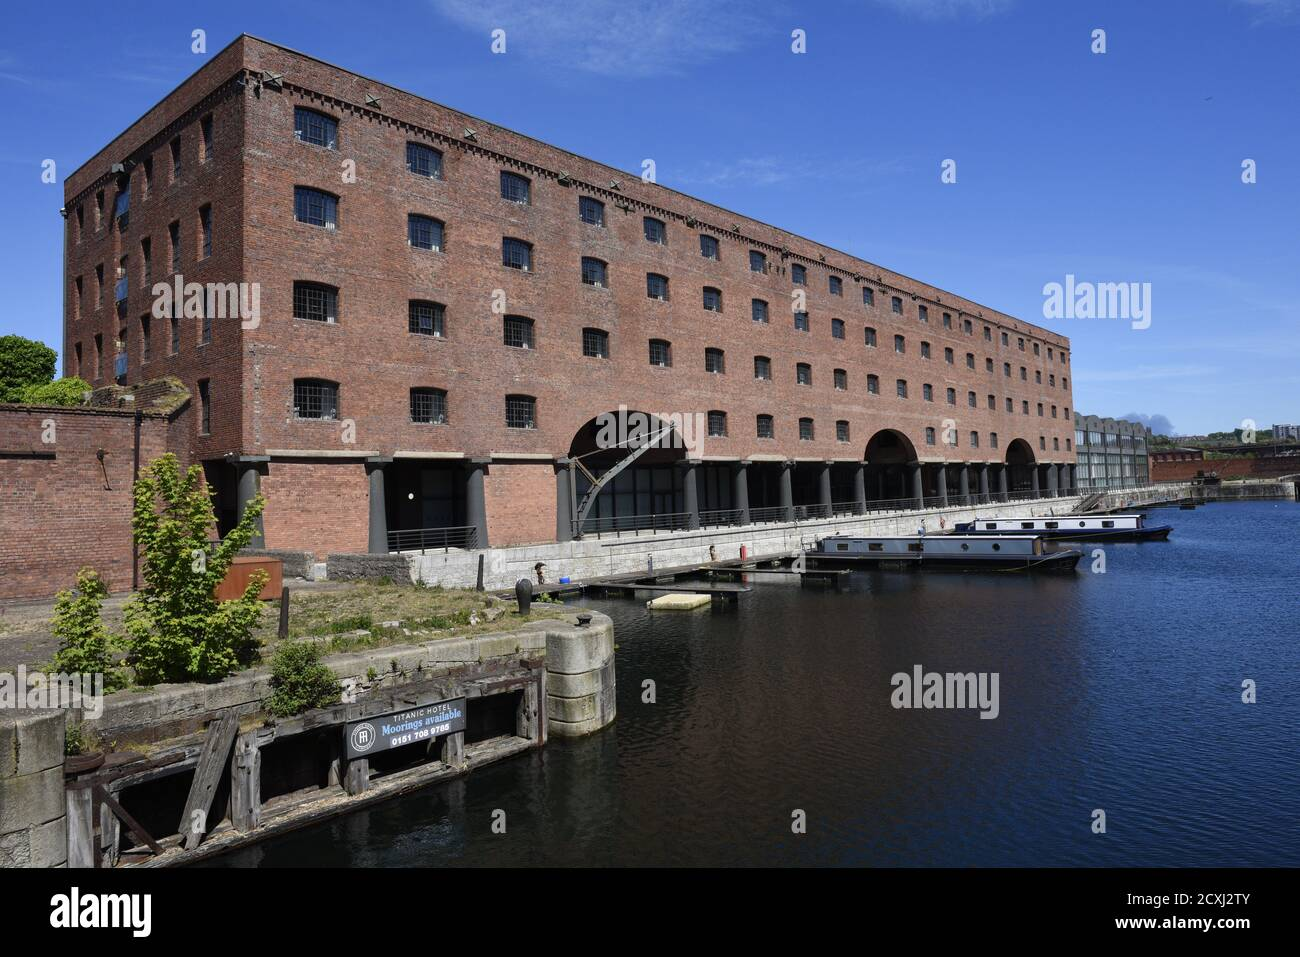 Titanic Hotel, Liverpool, England, UK. Part of the redevelopment of the historic Stanley Dock complex. Stock Photo